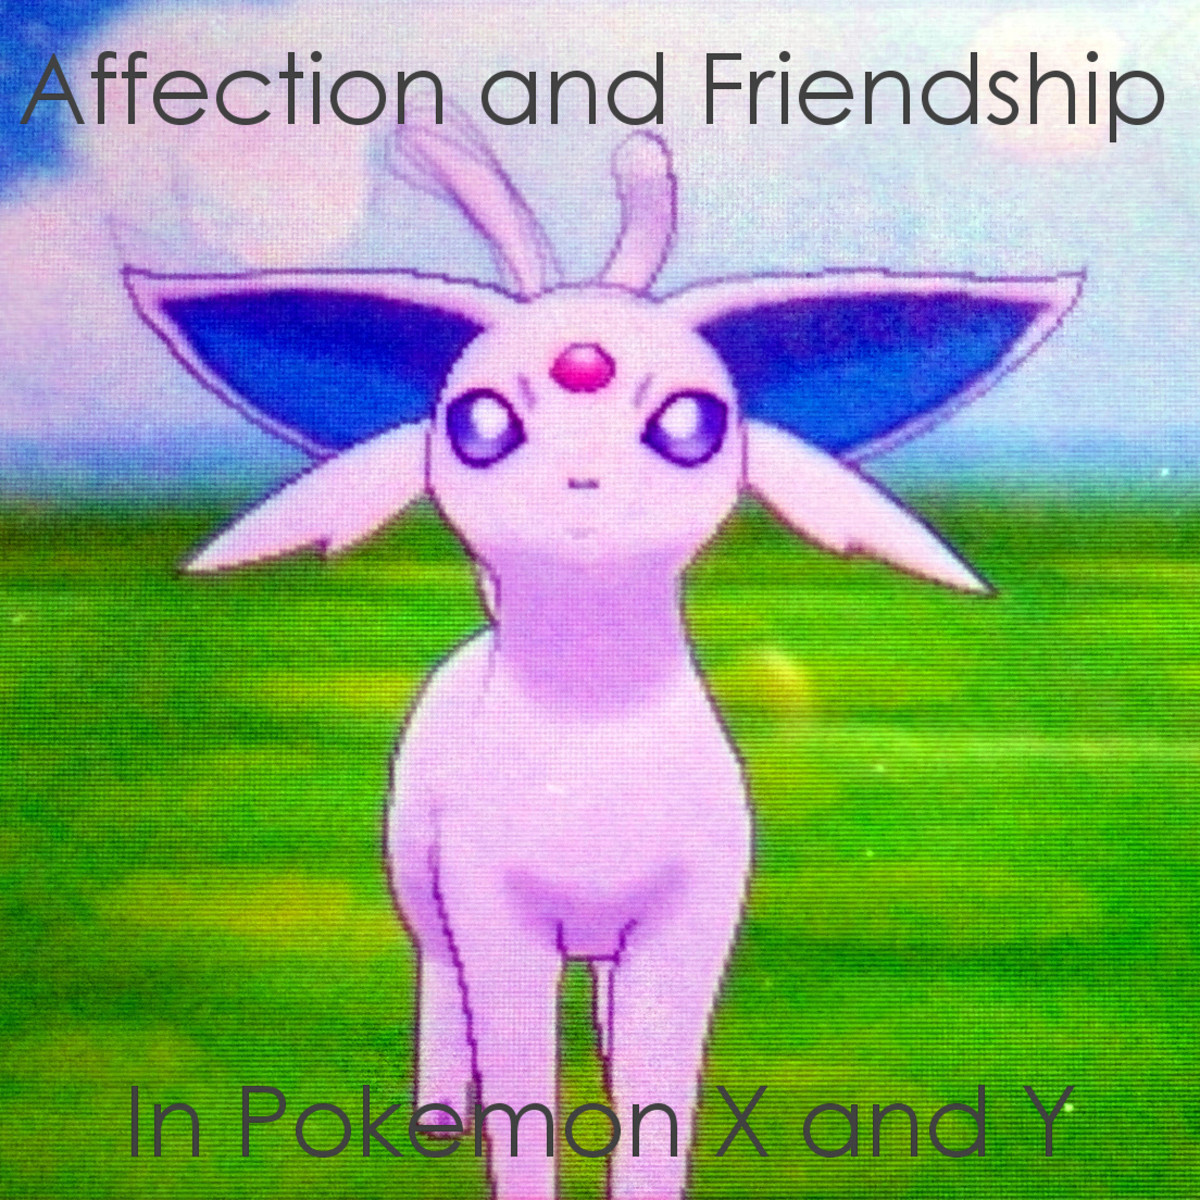 Affection and Friendship in Pokémon X and Pokémon Y